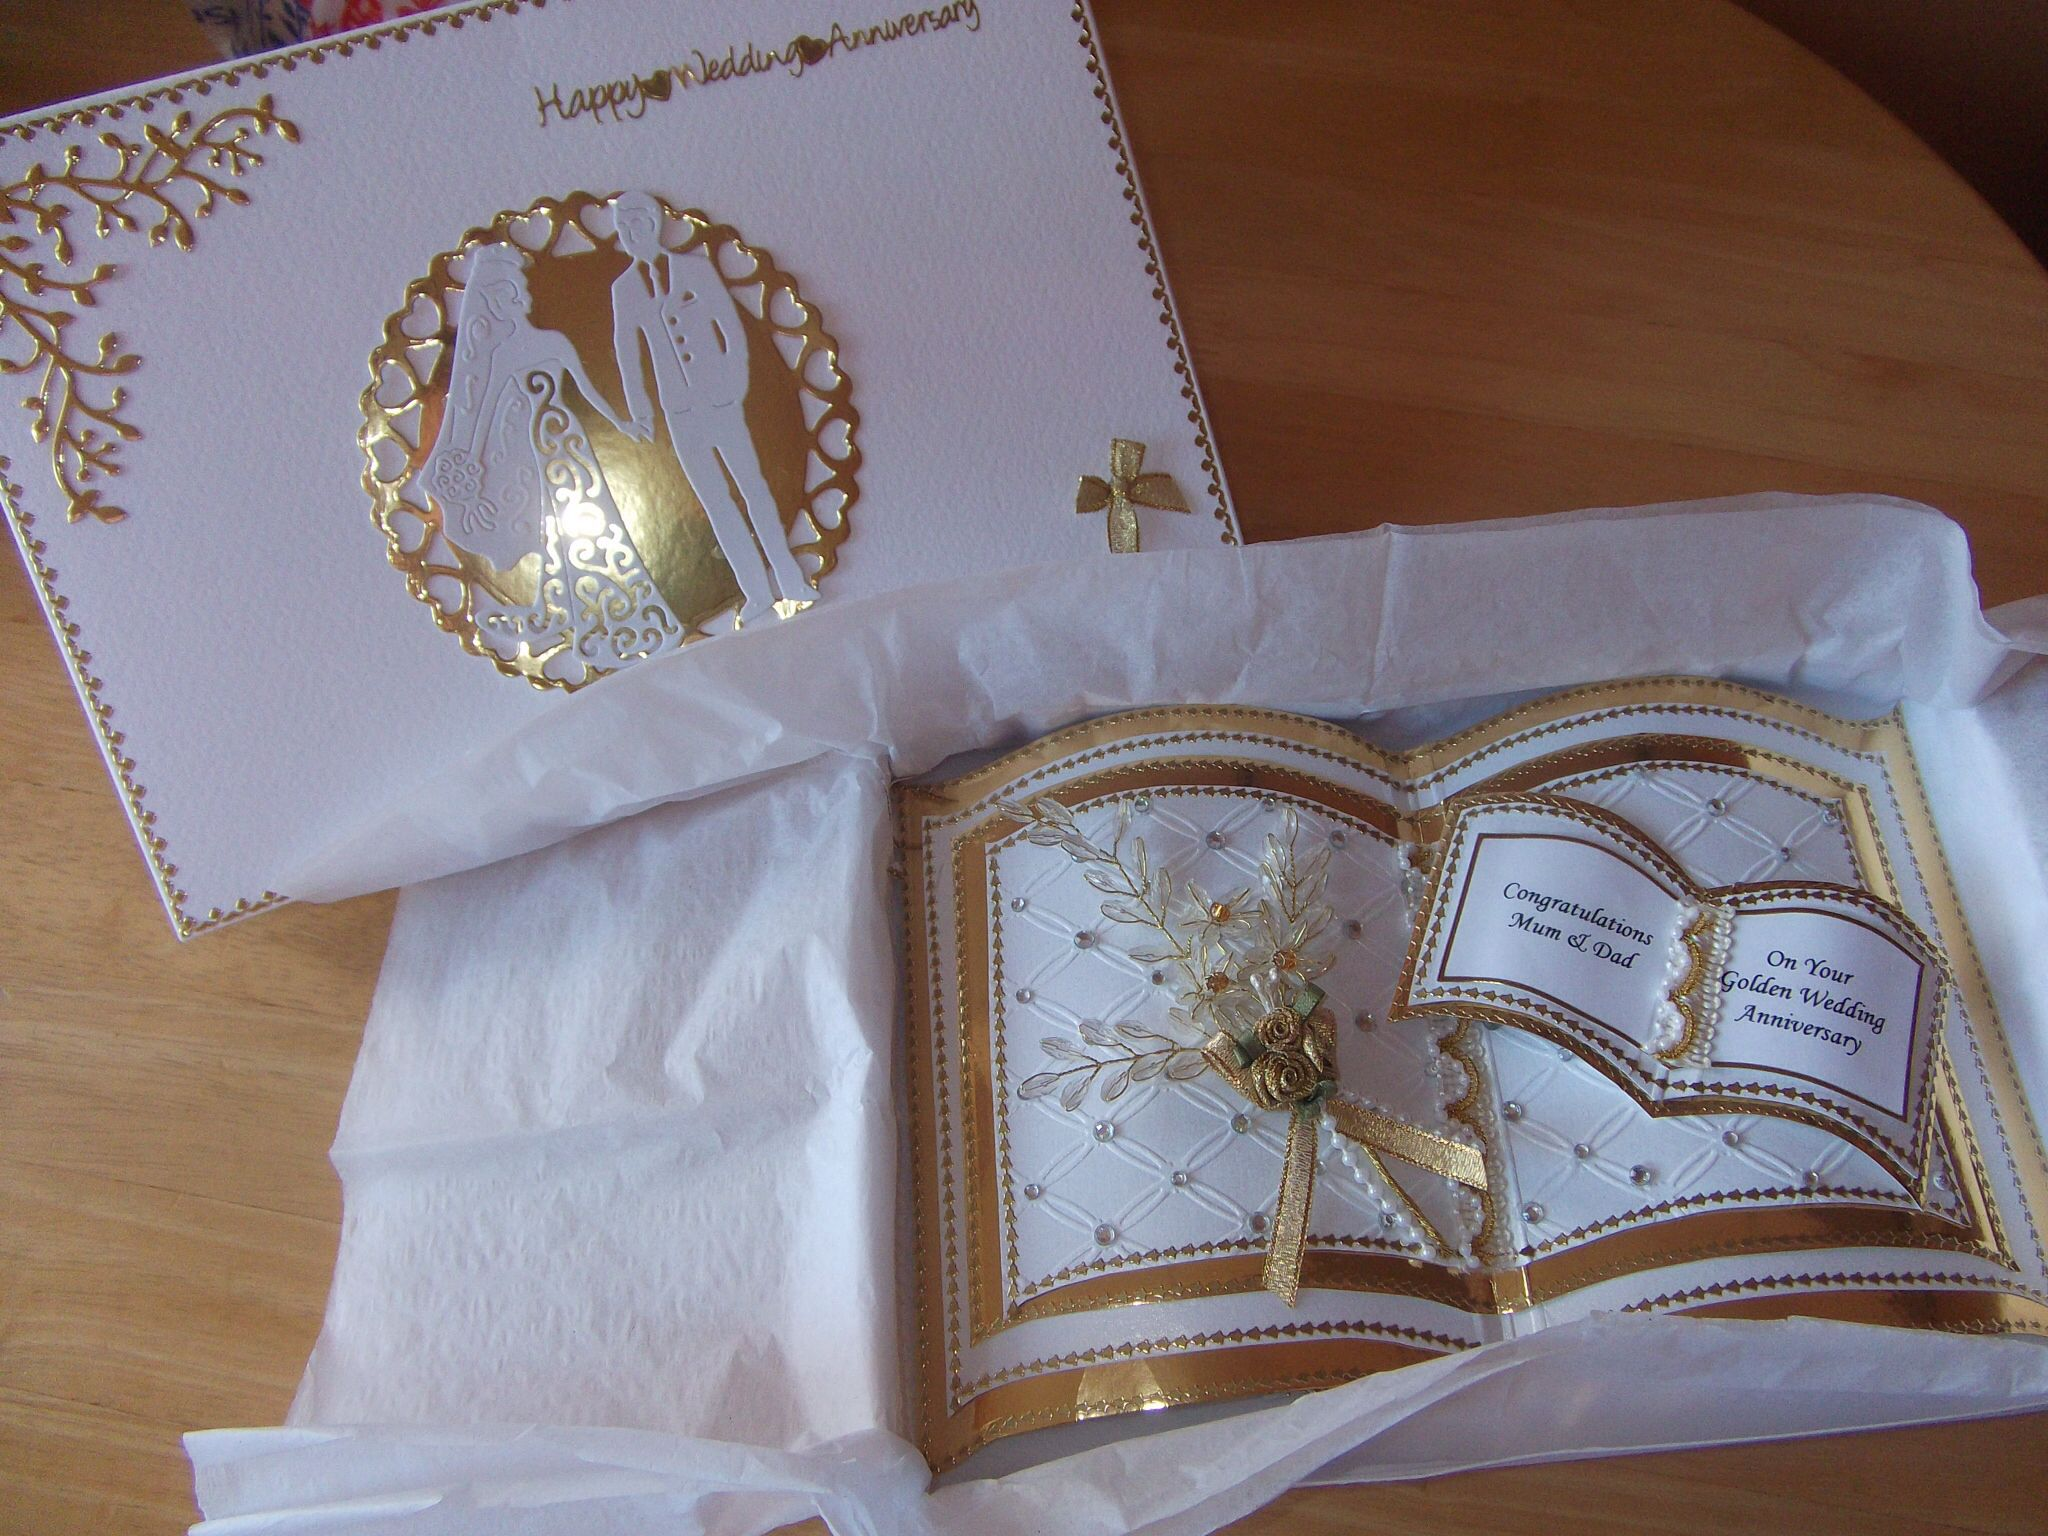 Books On Card Making Part - 47: Bookatrix Card And Box Made For Parentu0027s Golden Wedding.